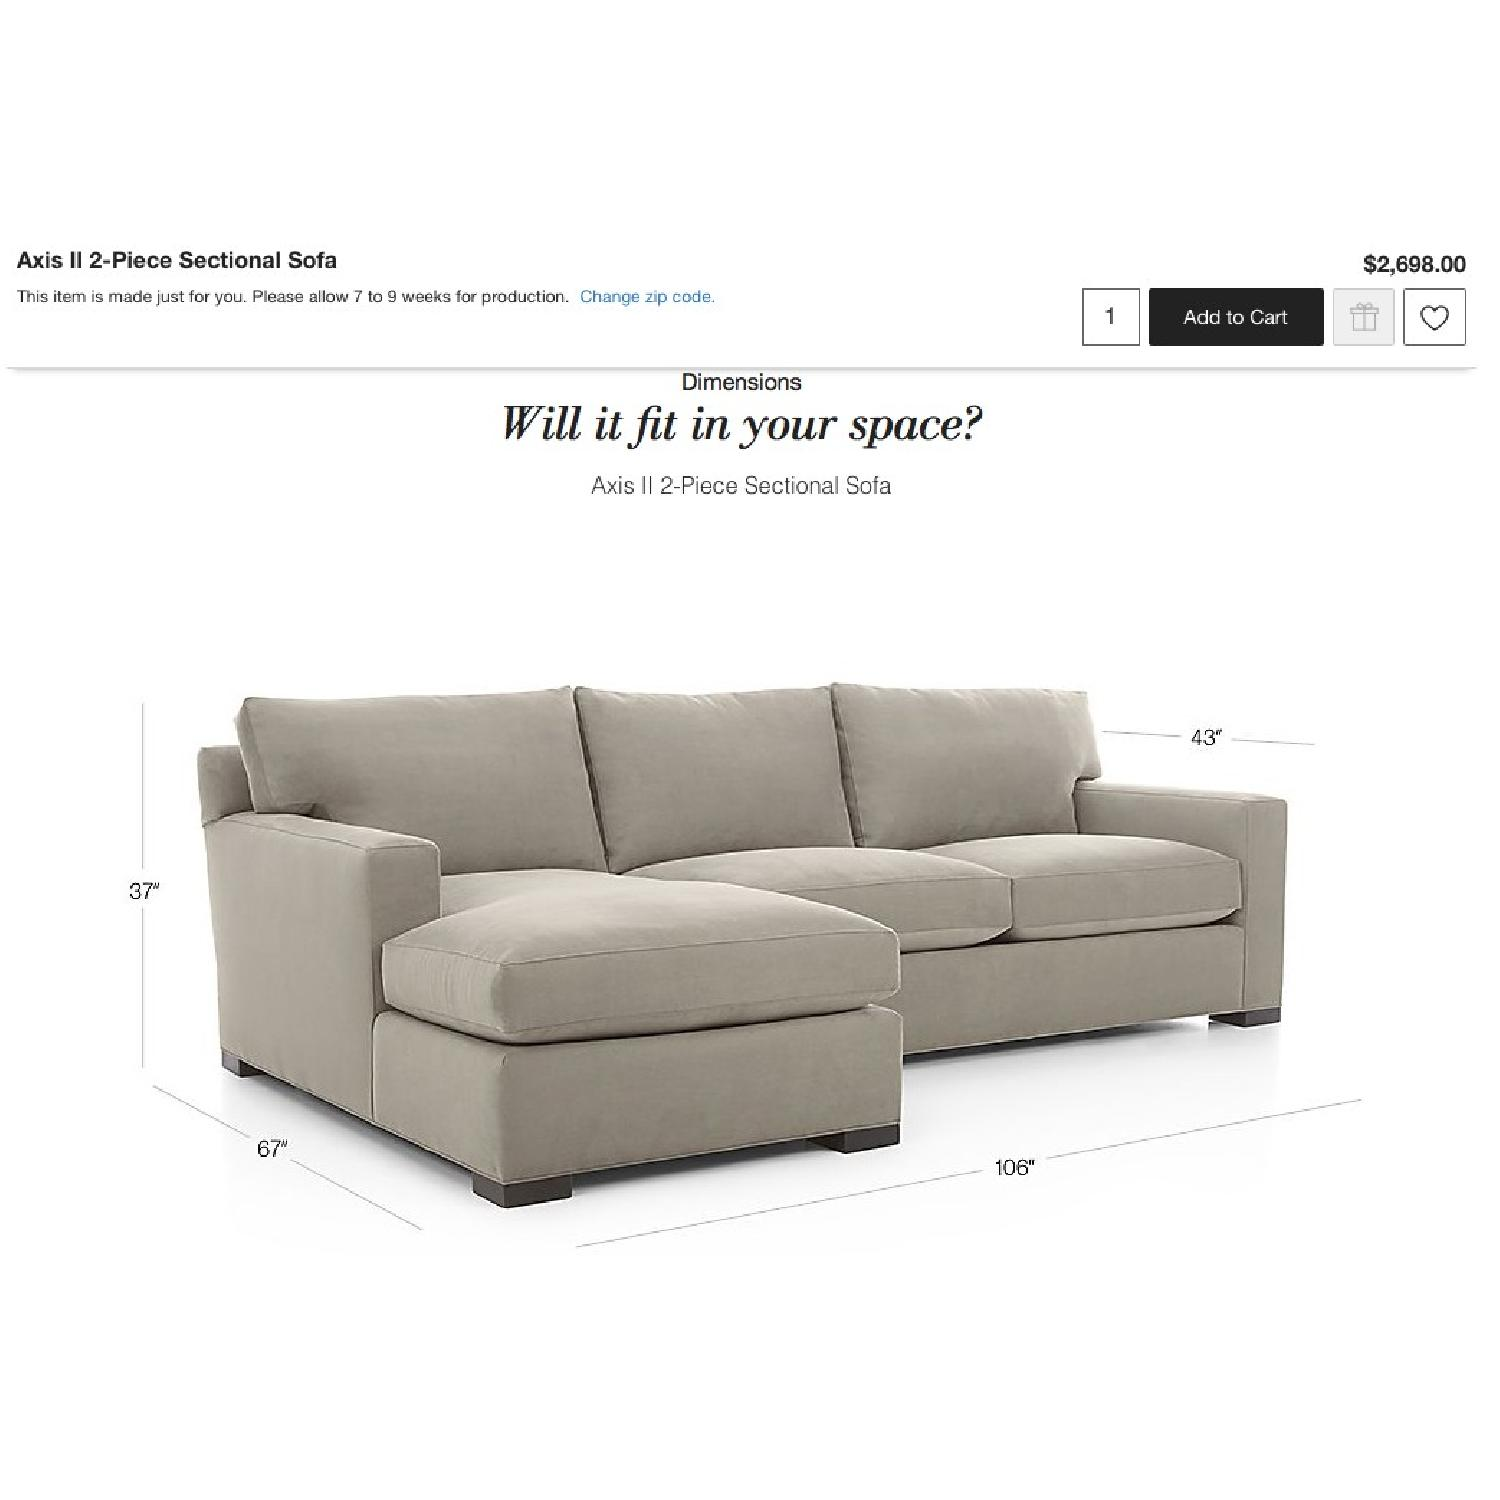 Crate & Barrel Left Arm Chaise Sectional Sofa in Eggplant-3